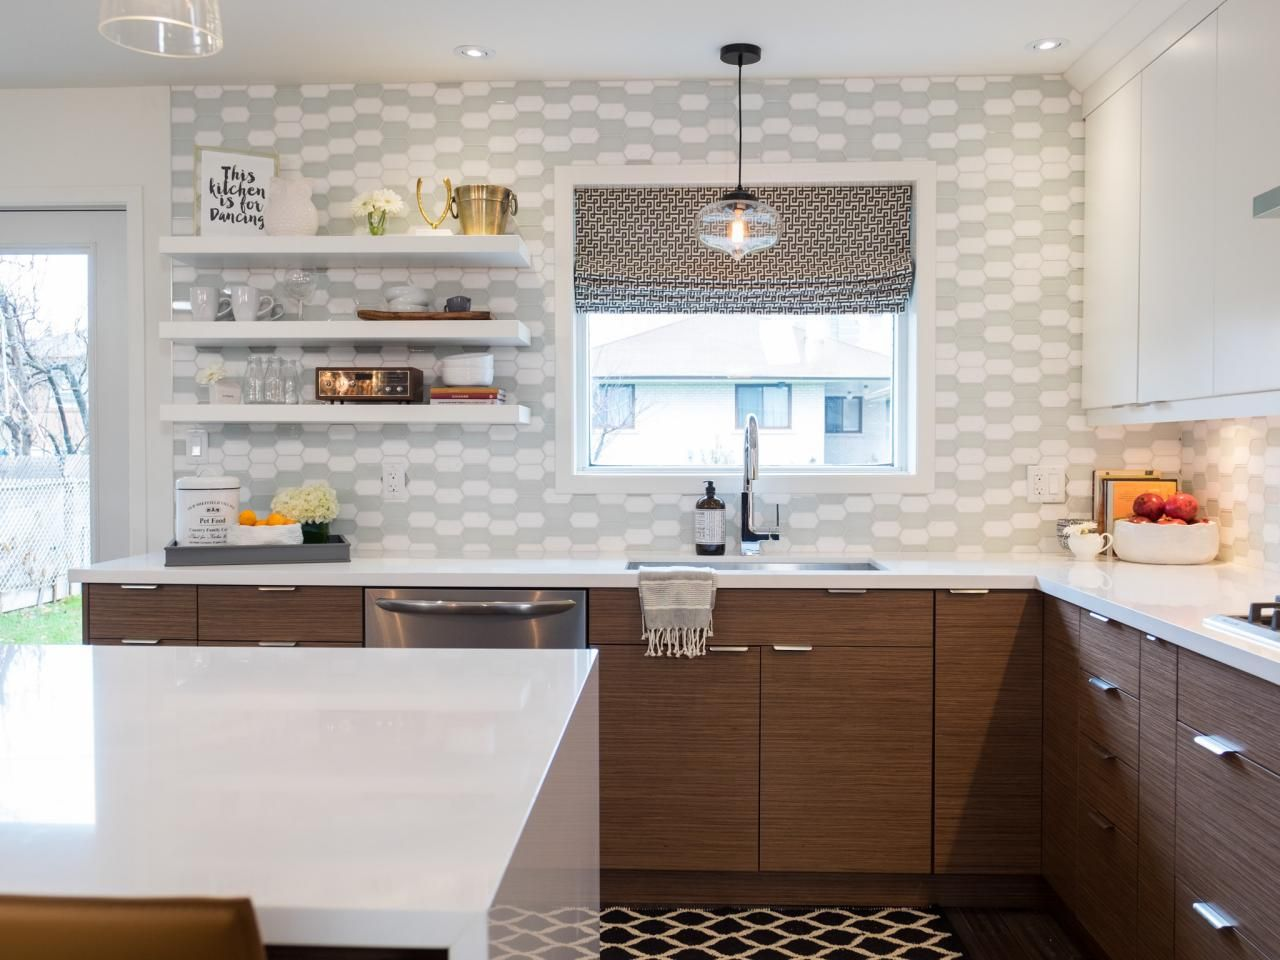 Find the best of property brothers from hgtv kitchen - Property brothers small kitchen designs ...